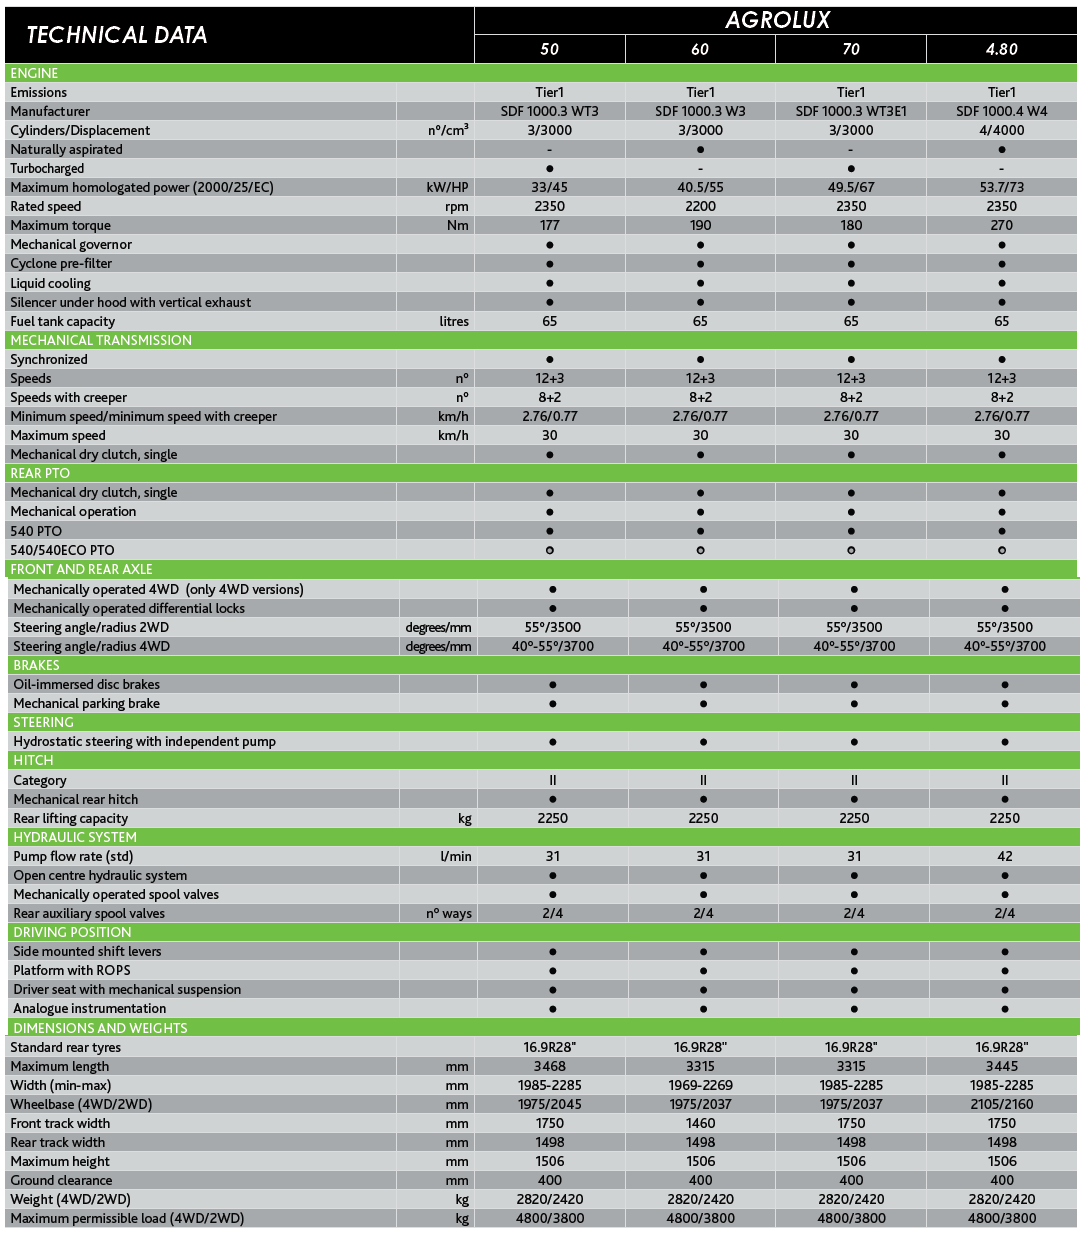 Technical sheet - Agrolux 50 | 60 | 70 | 4.80